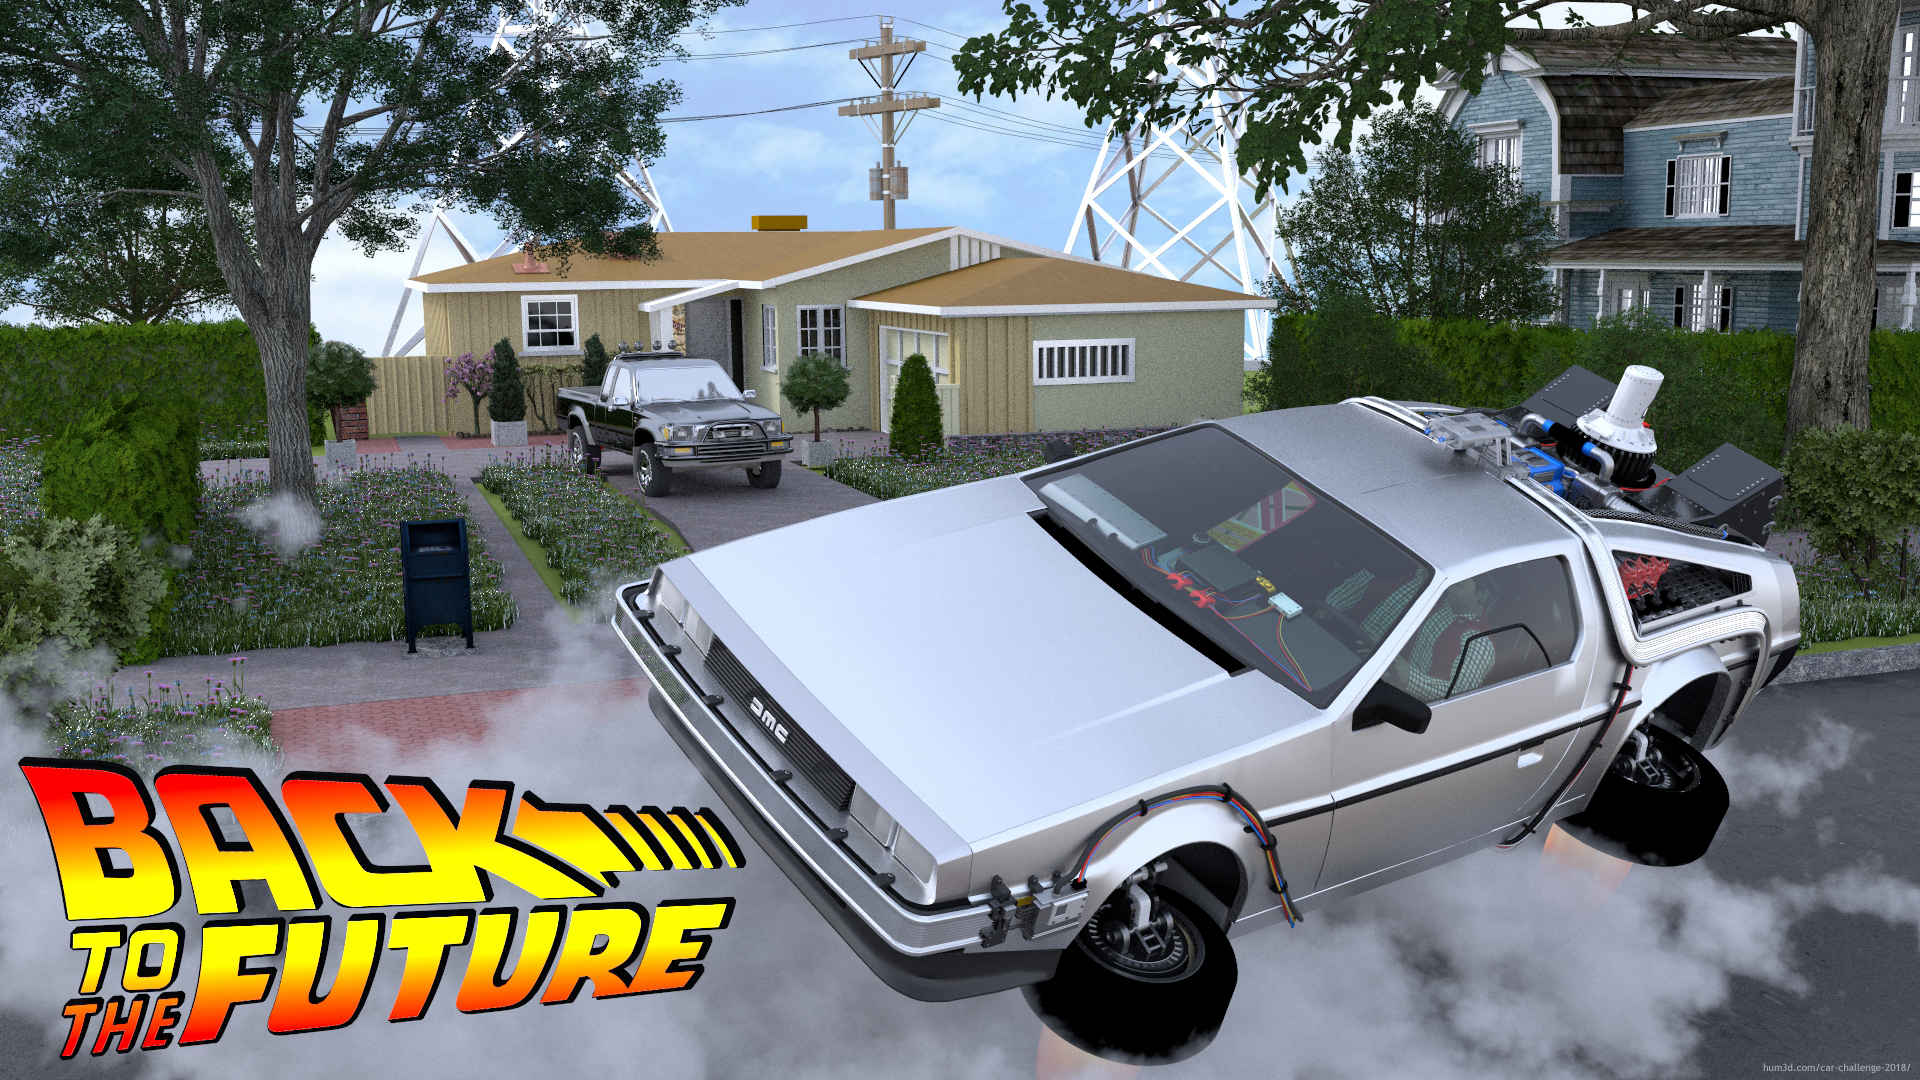 Back to the future 2018 3d art